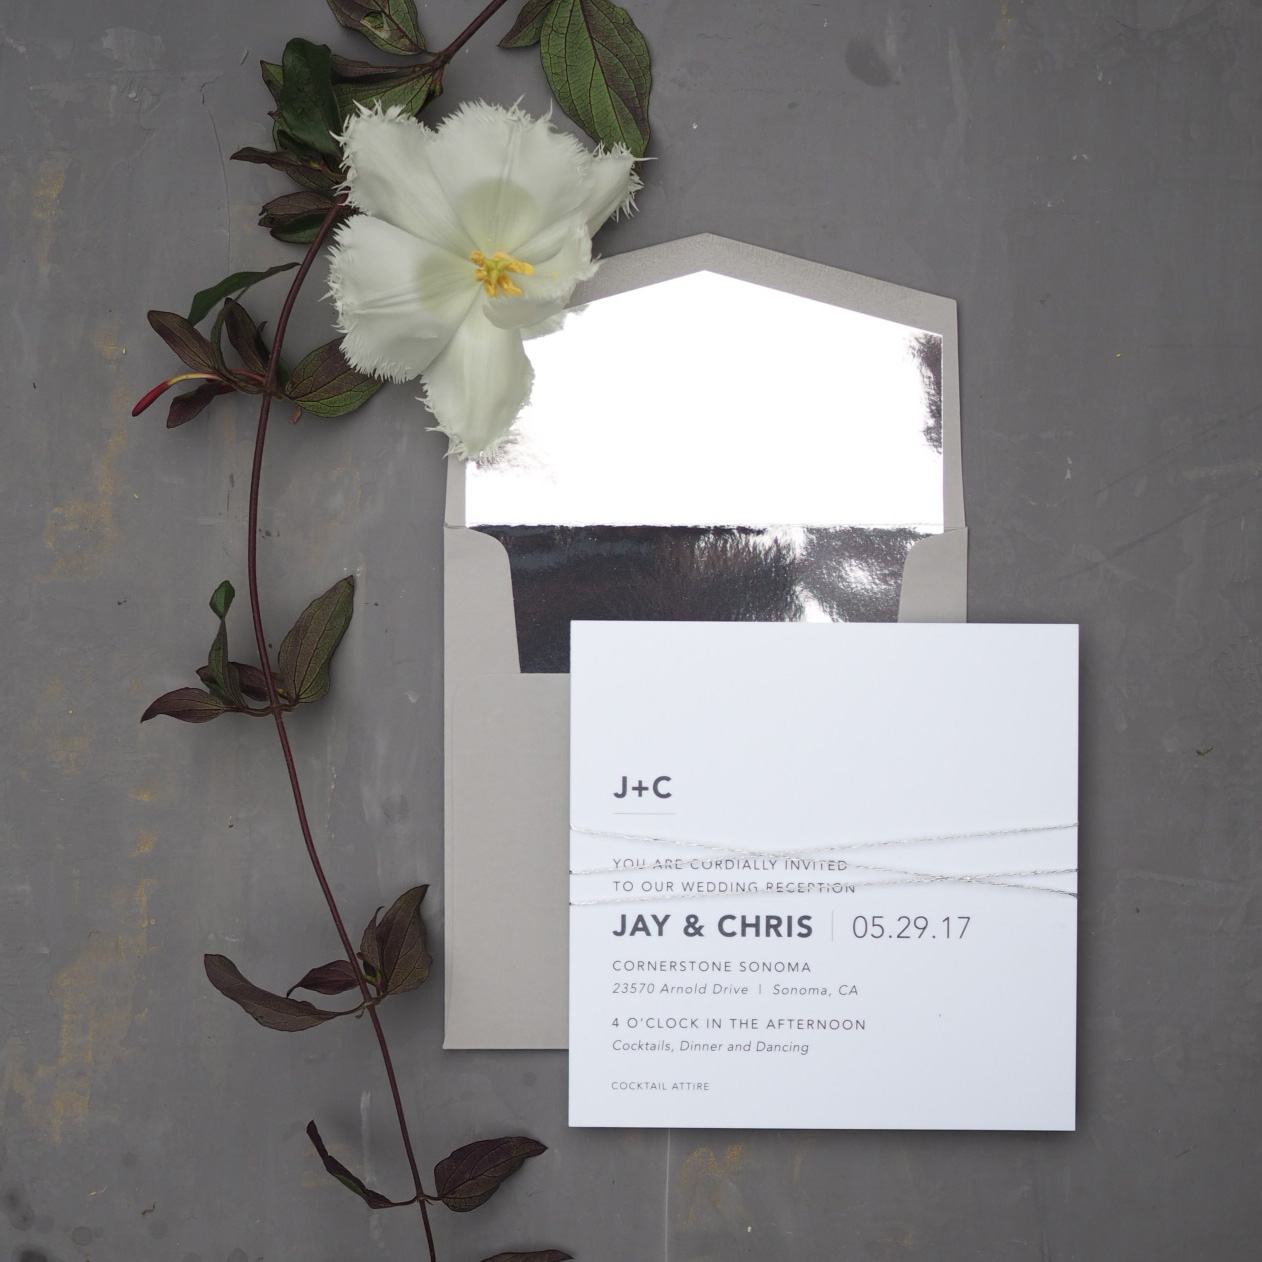 Invitation Suite with Mirror Envelope Liner by Bowerbird Atelier